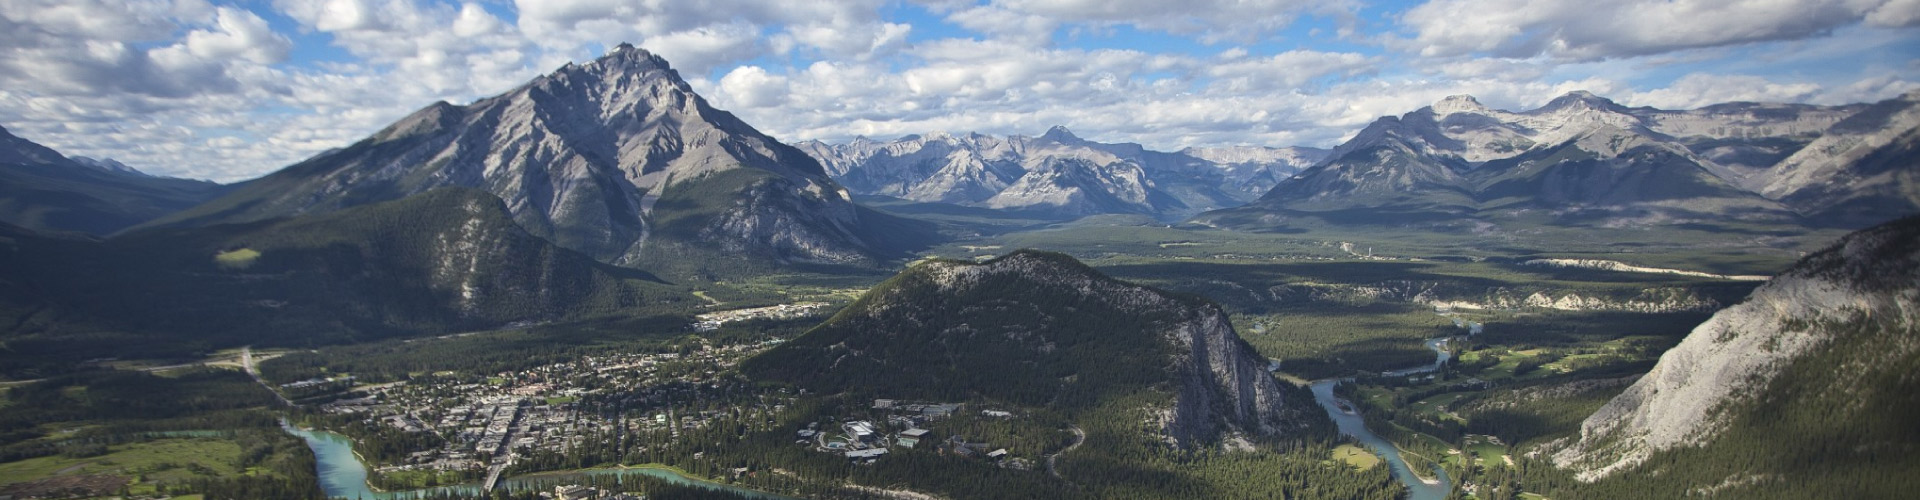 Location - Town of Banff